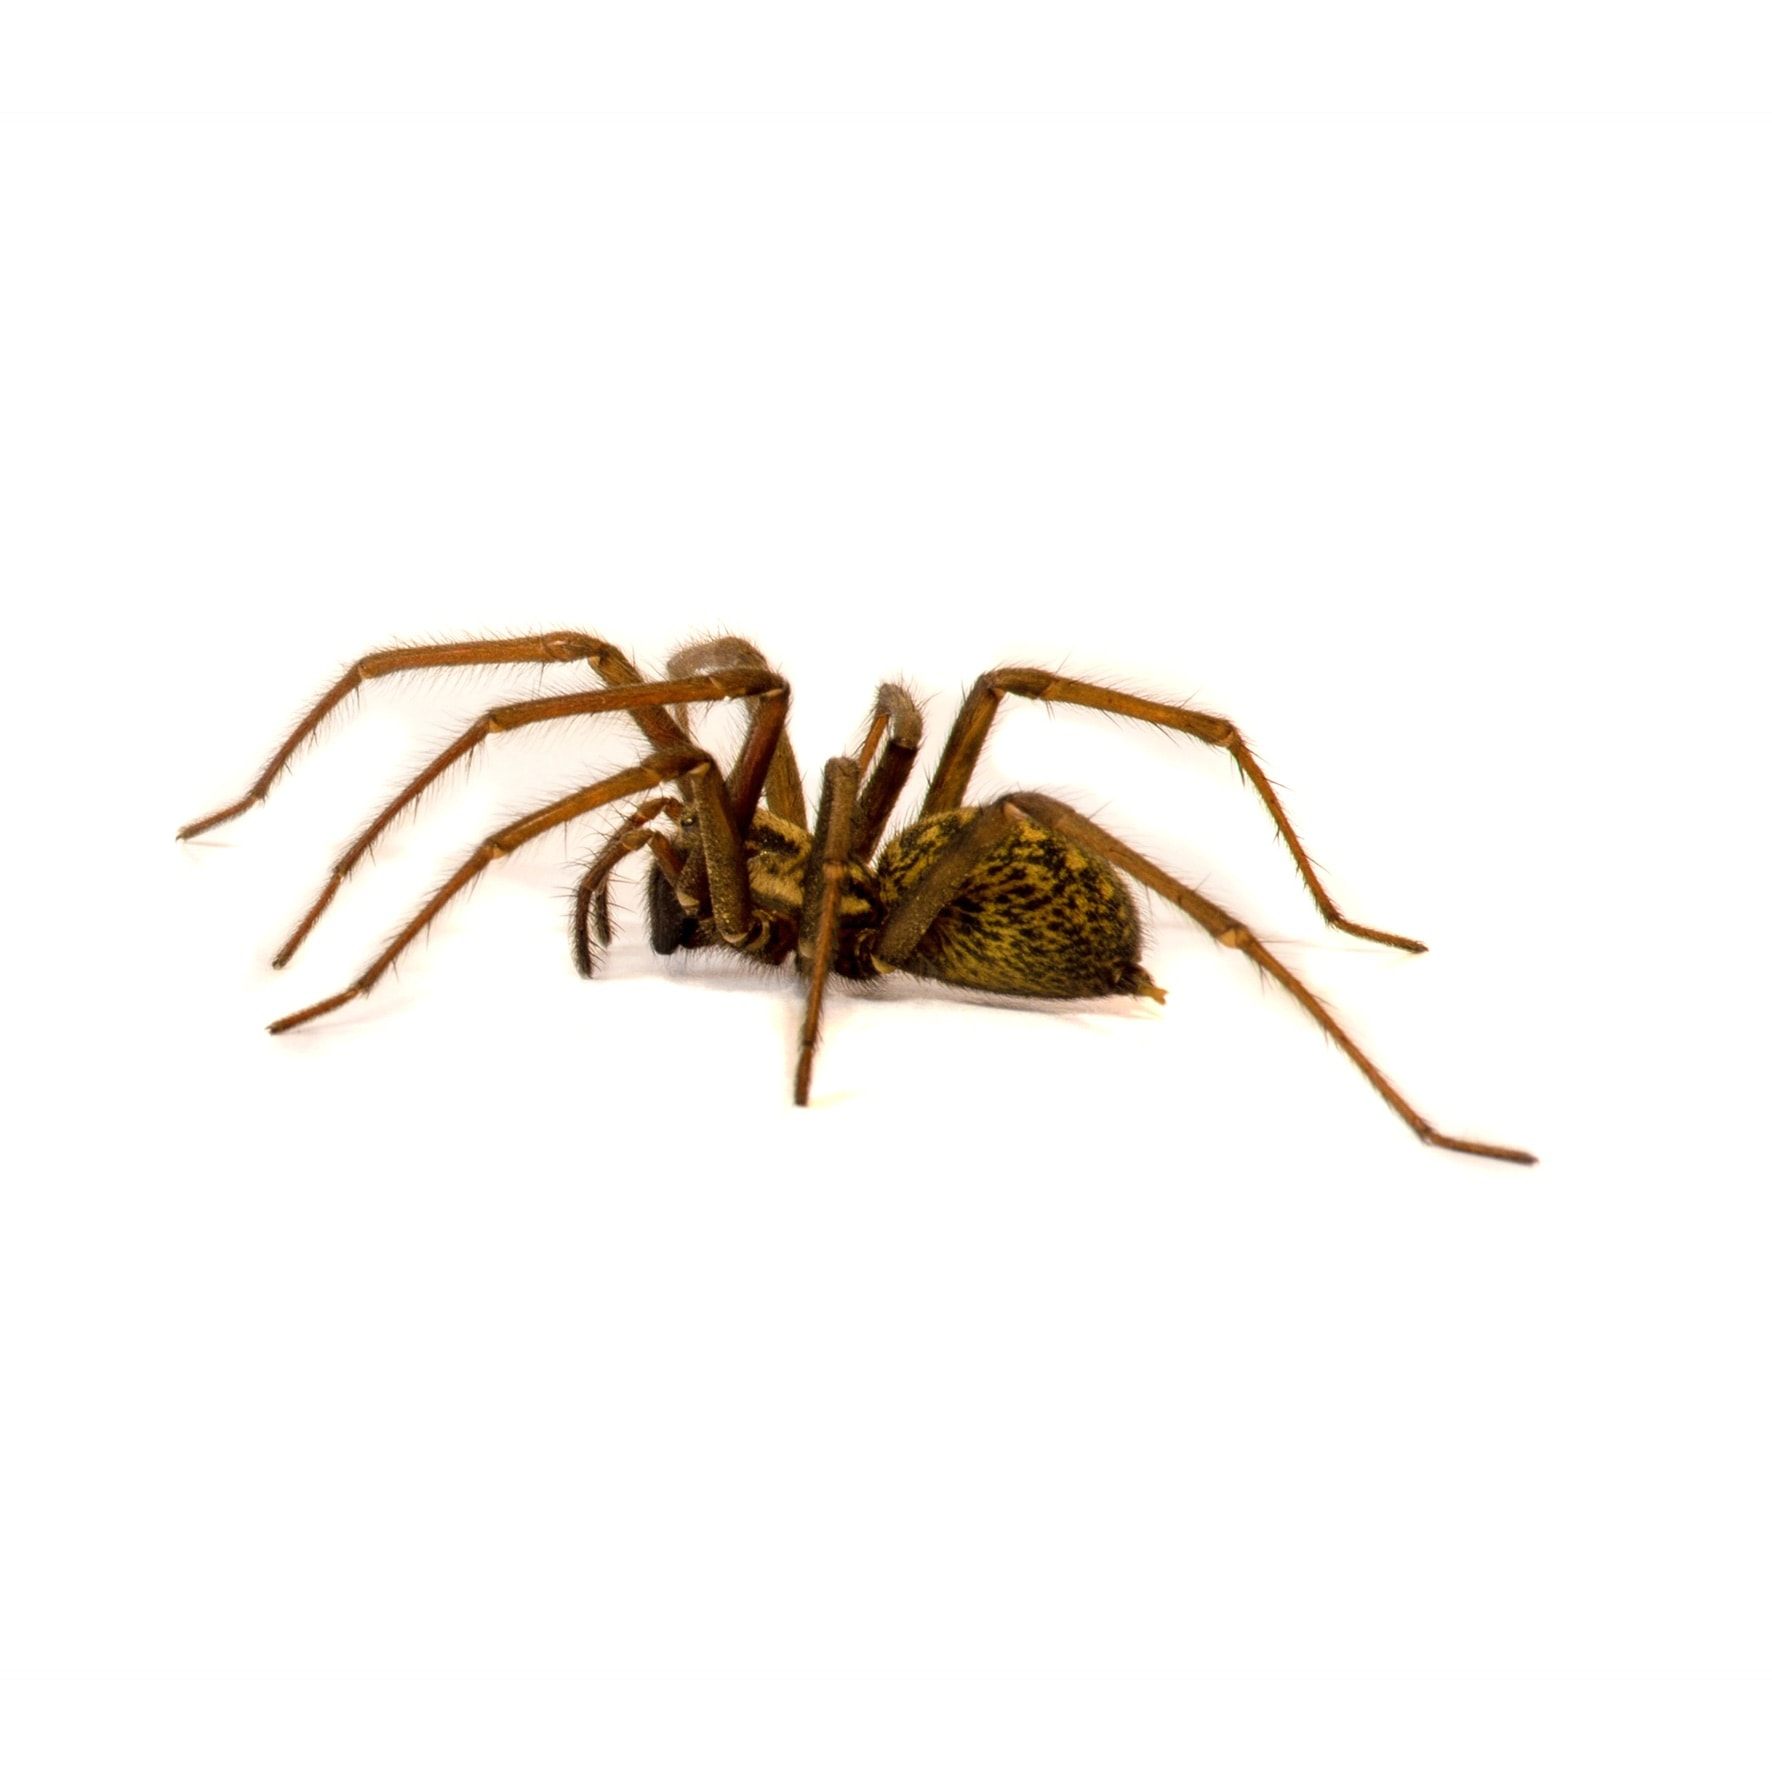 Picture of Eratigena duellica (Giant House Spider) - Lateral